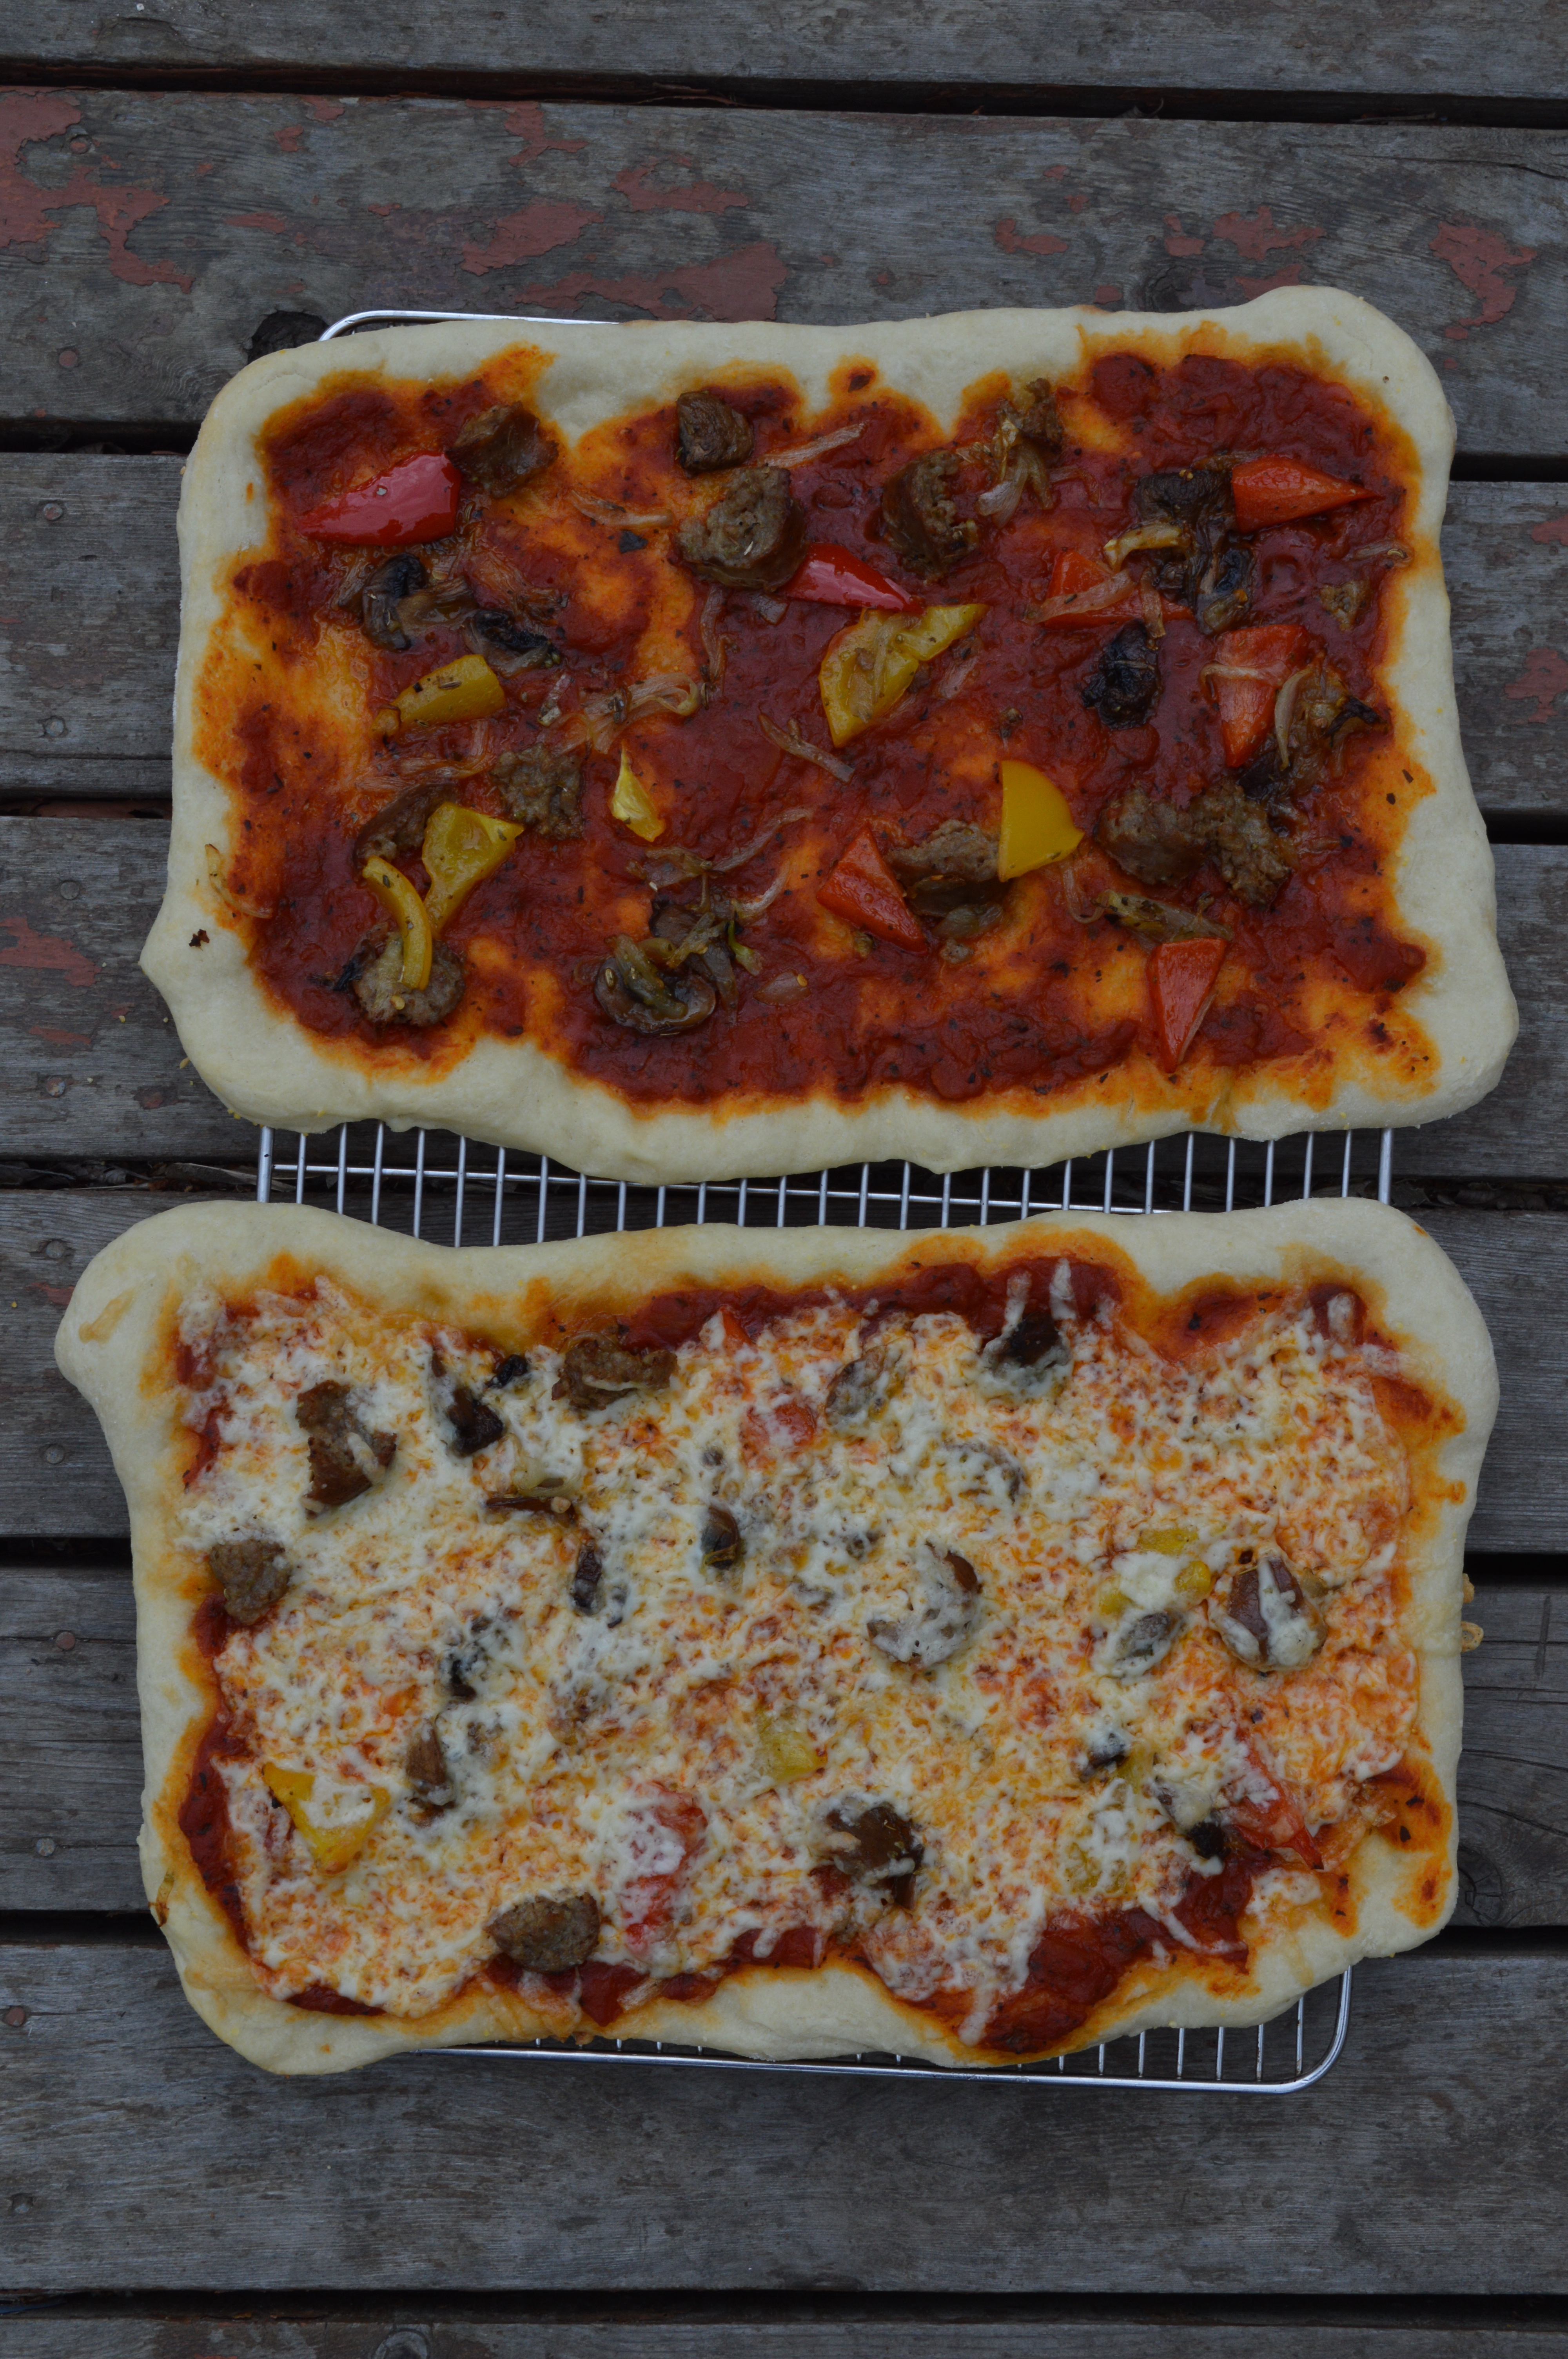 Homemade pizzas with sausage, peppers, and provolone.